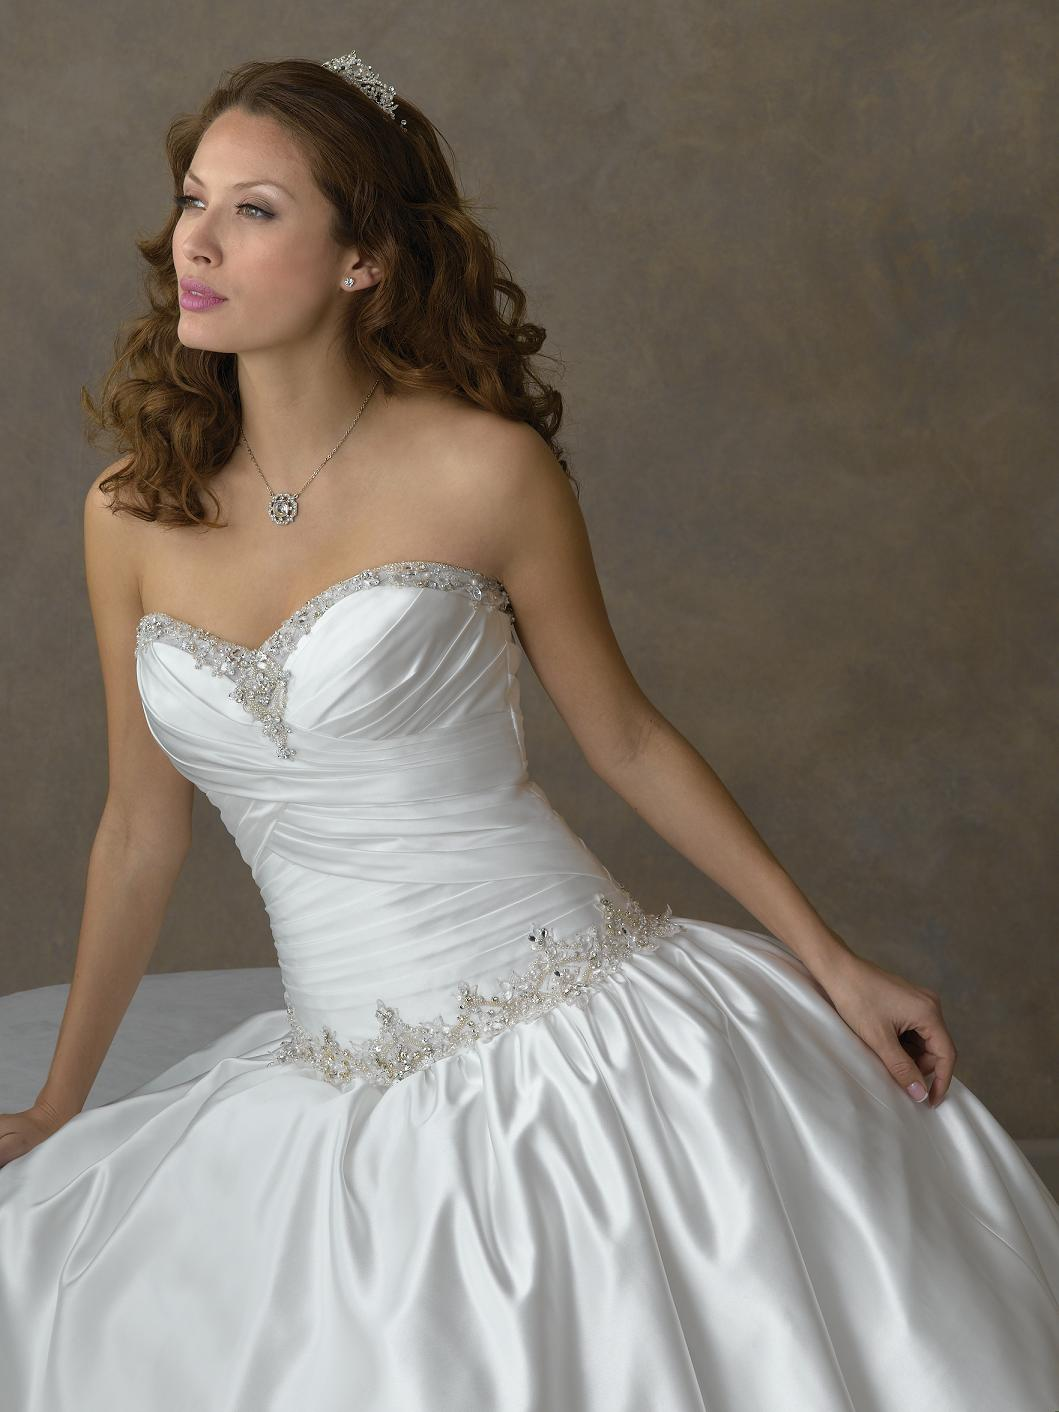 Corsetted Mini Wedding Dress From hersera